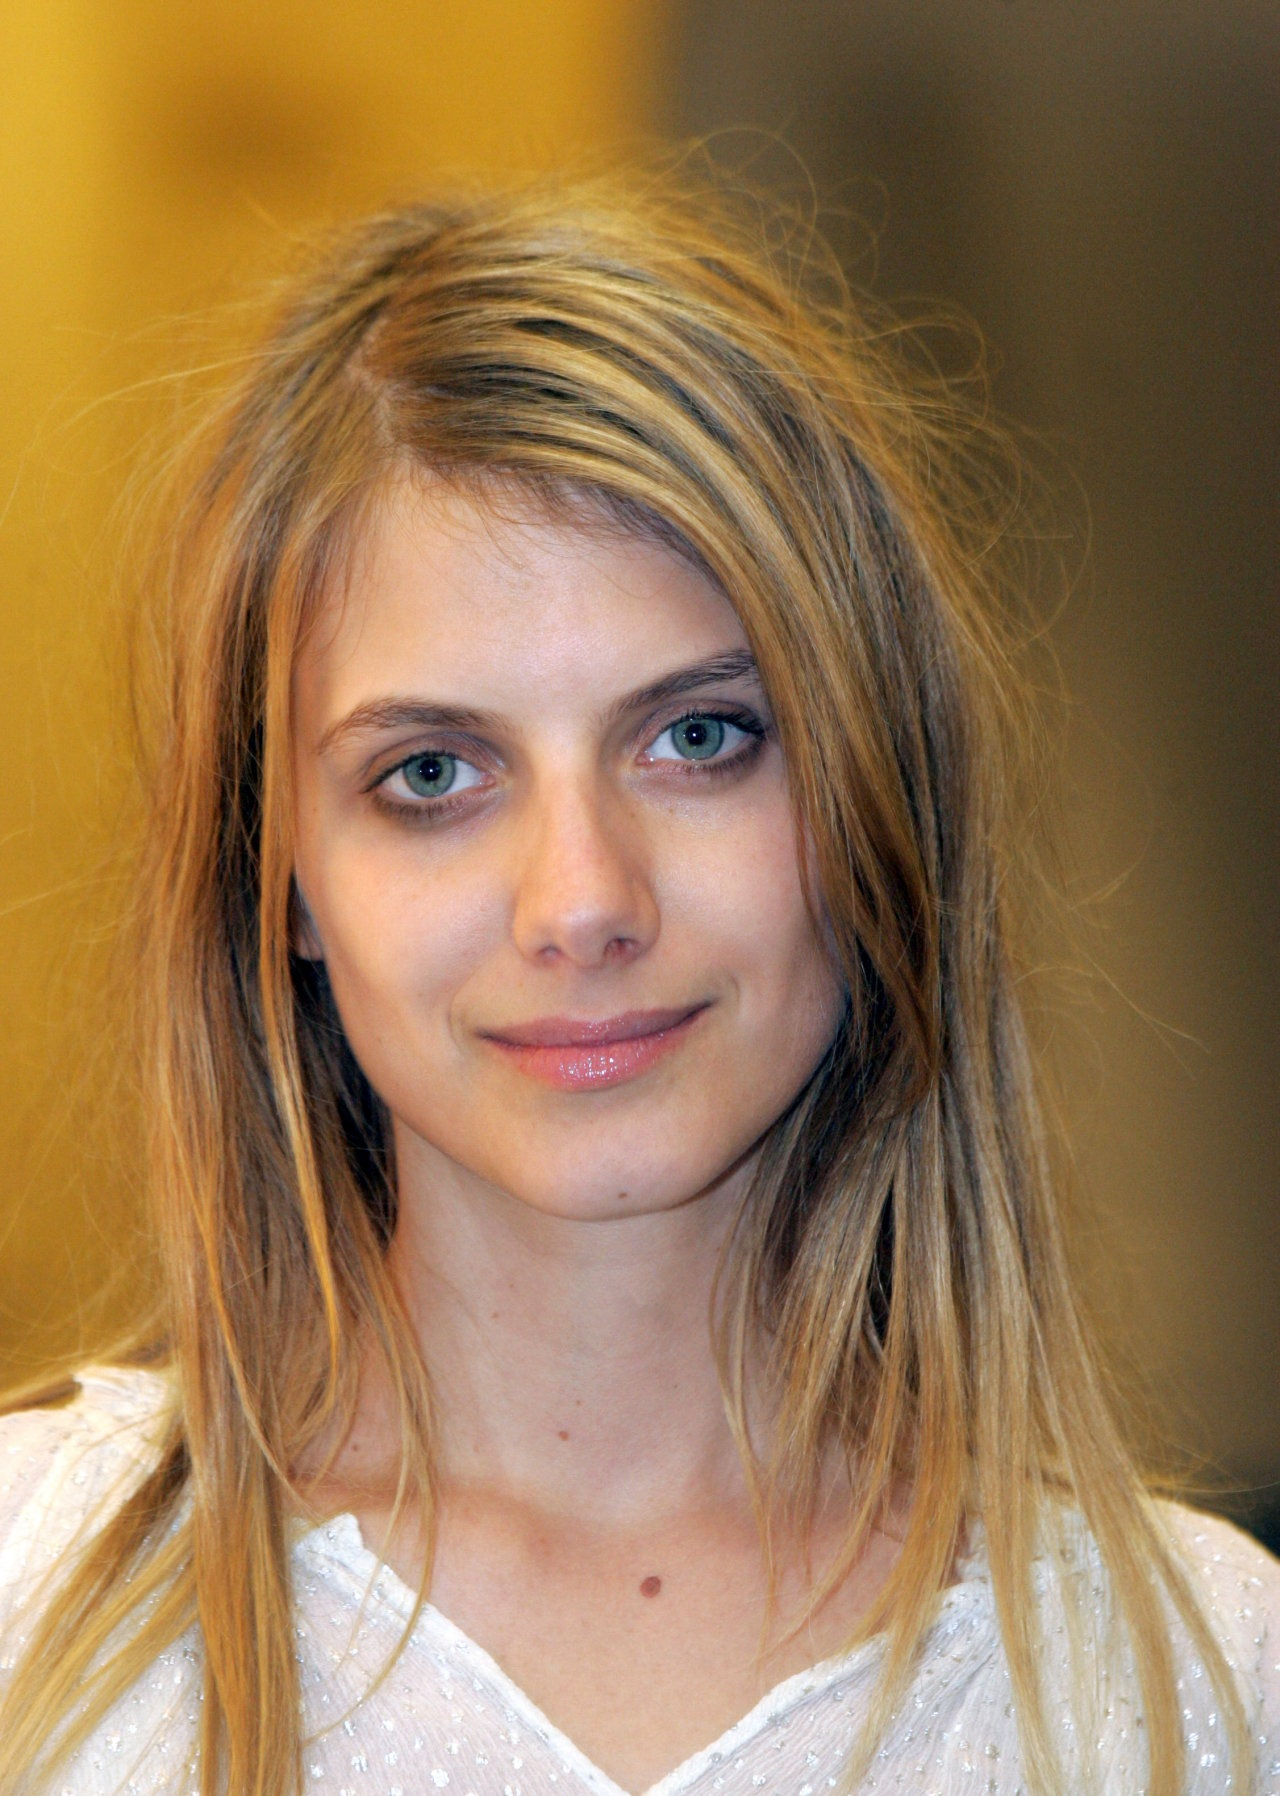 Celebrity Melanie Laurent nudes (42 foto and video), Ass, Sideboobs, Boobs, butt 2015